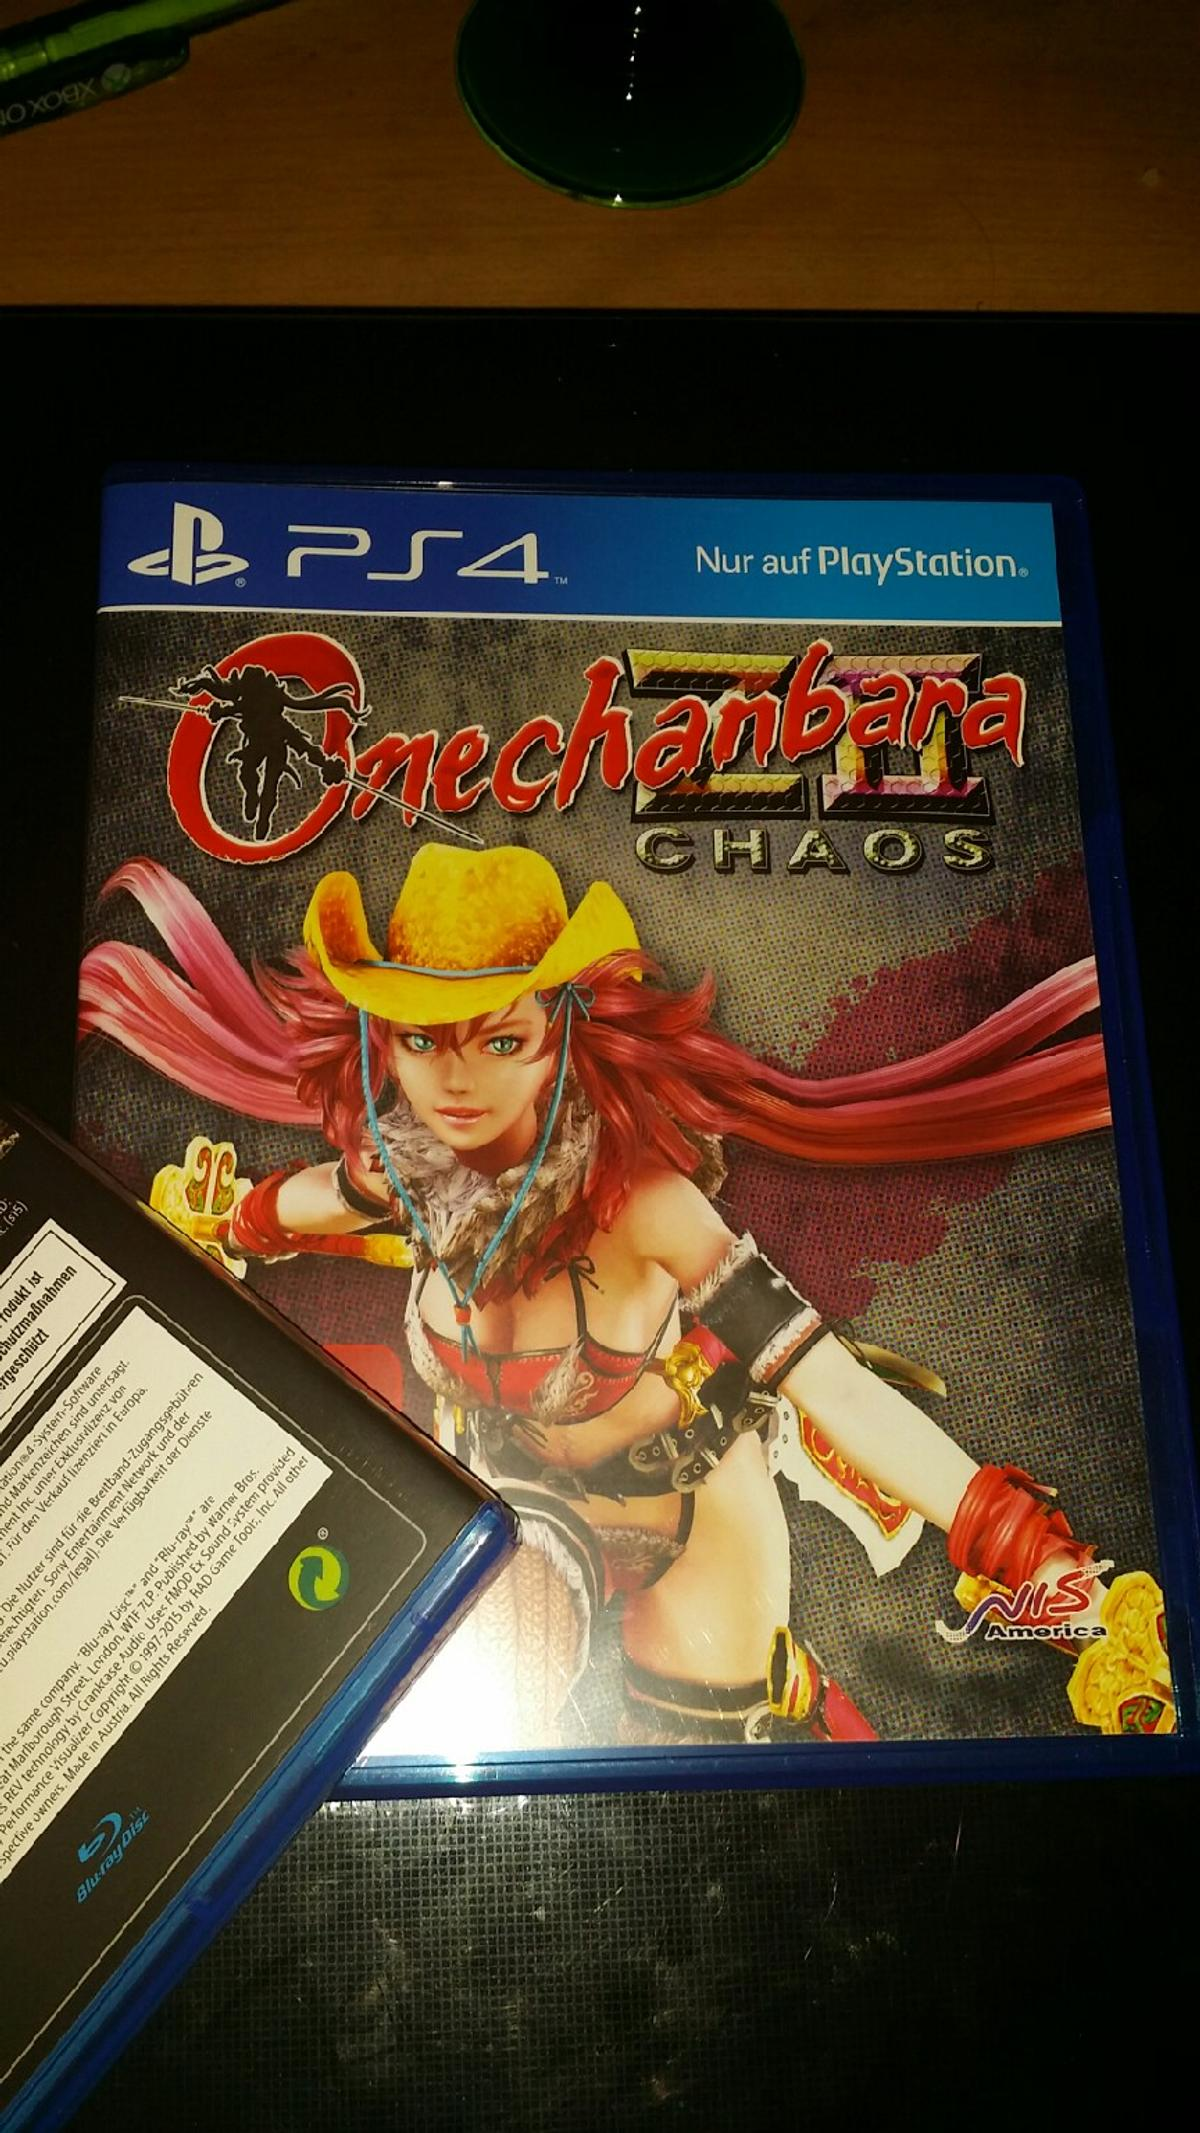 Onechanbara Z2 Chaos Ps4 In 65529 Waldems For 30 00 For Sale Shpock